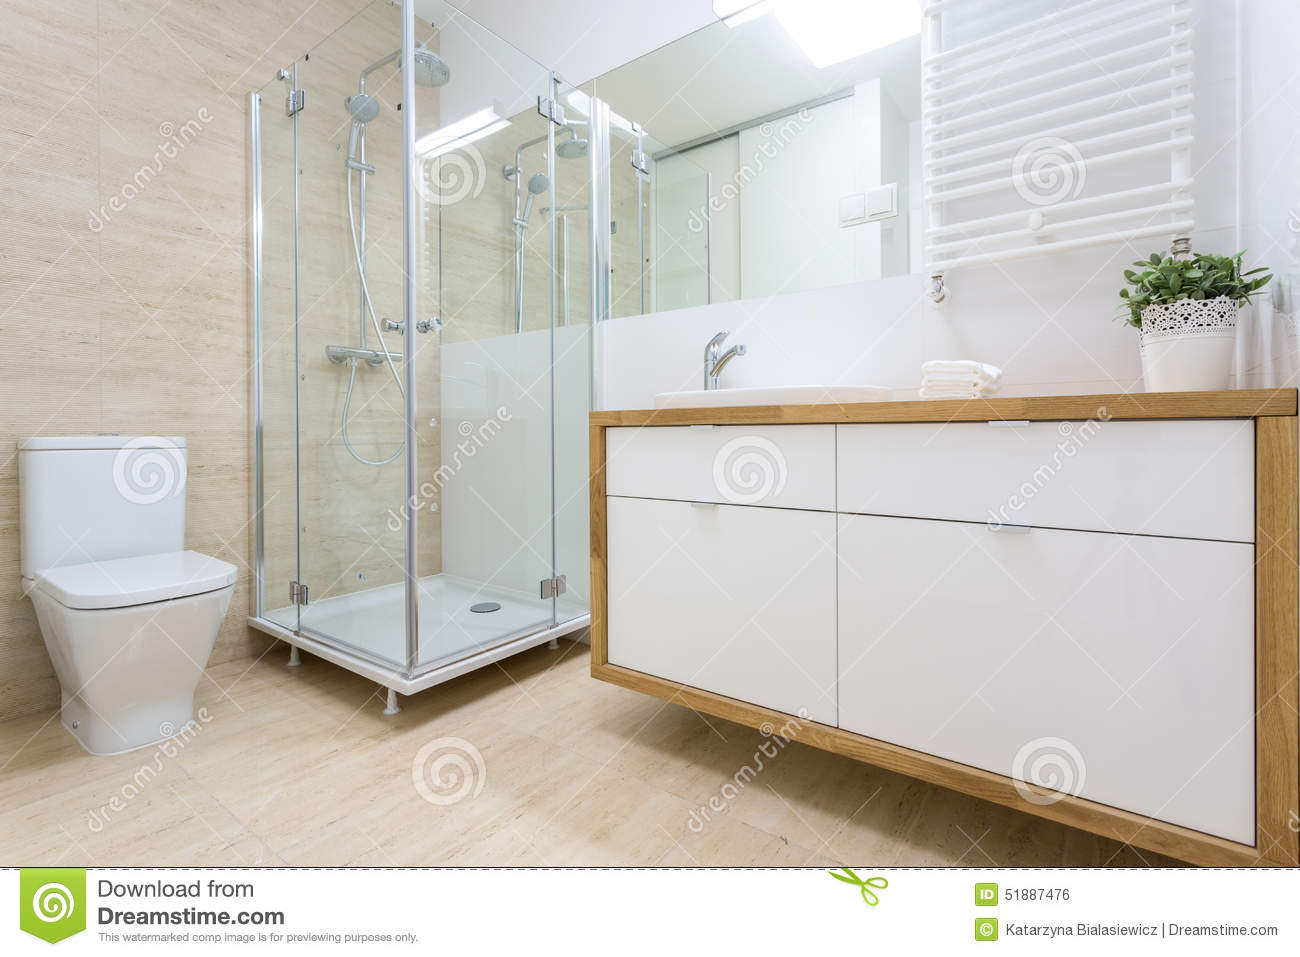 Washroom Interior In Traditional Design Stock Photo